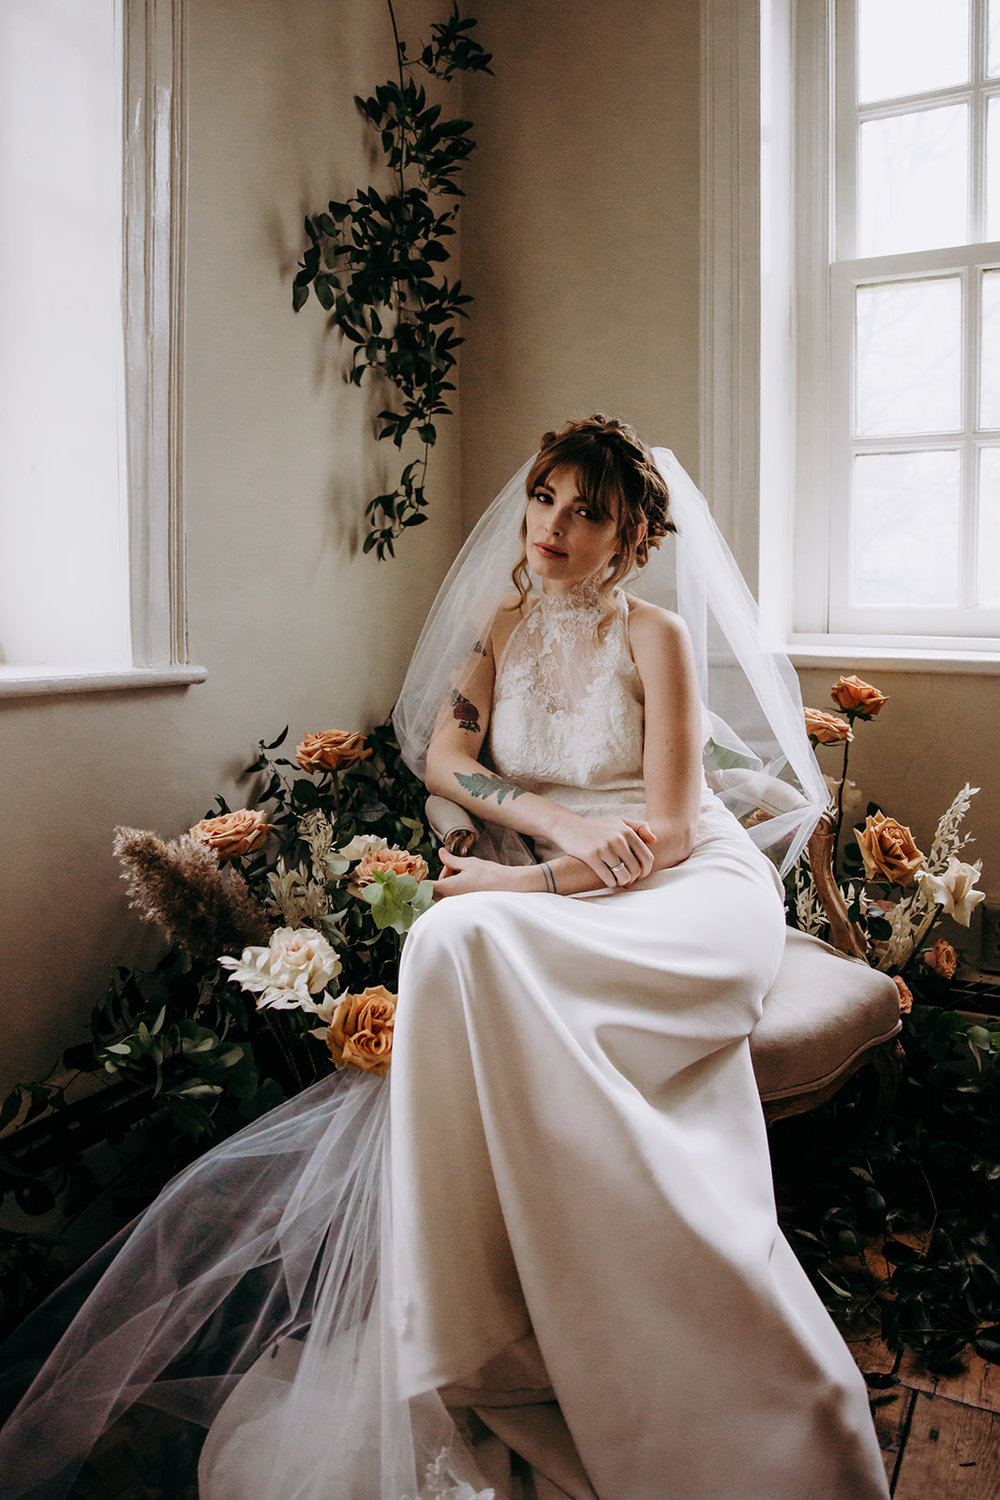 lea-ann-belter-bridal-editorial-windrift-hall-wedding-photographer-new-york-145.jpg